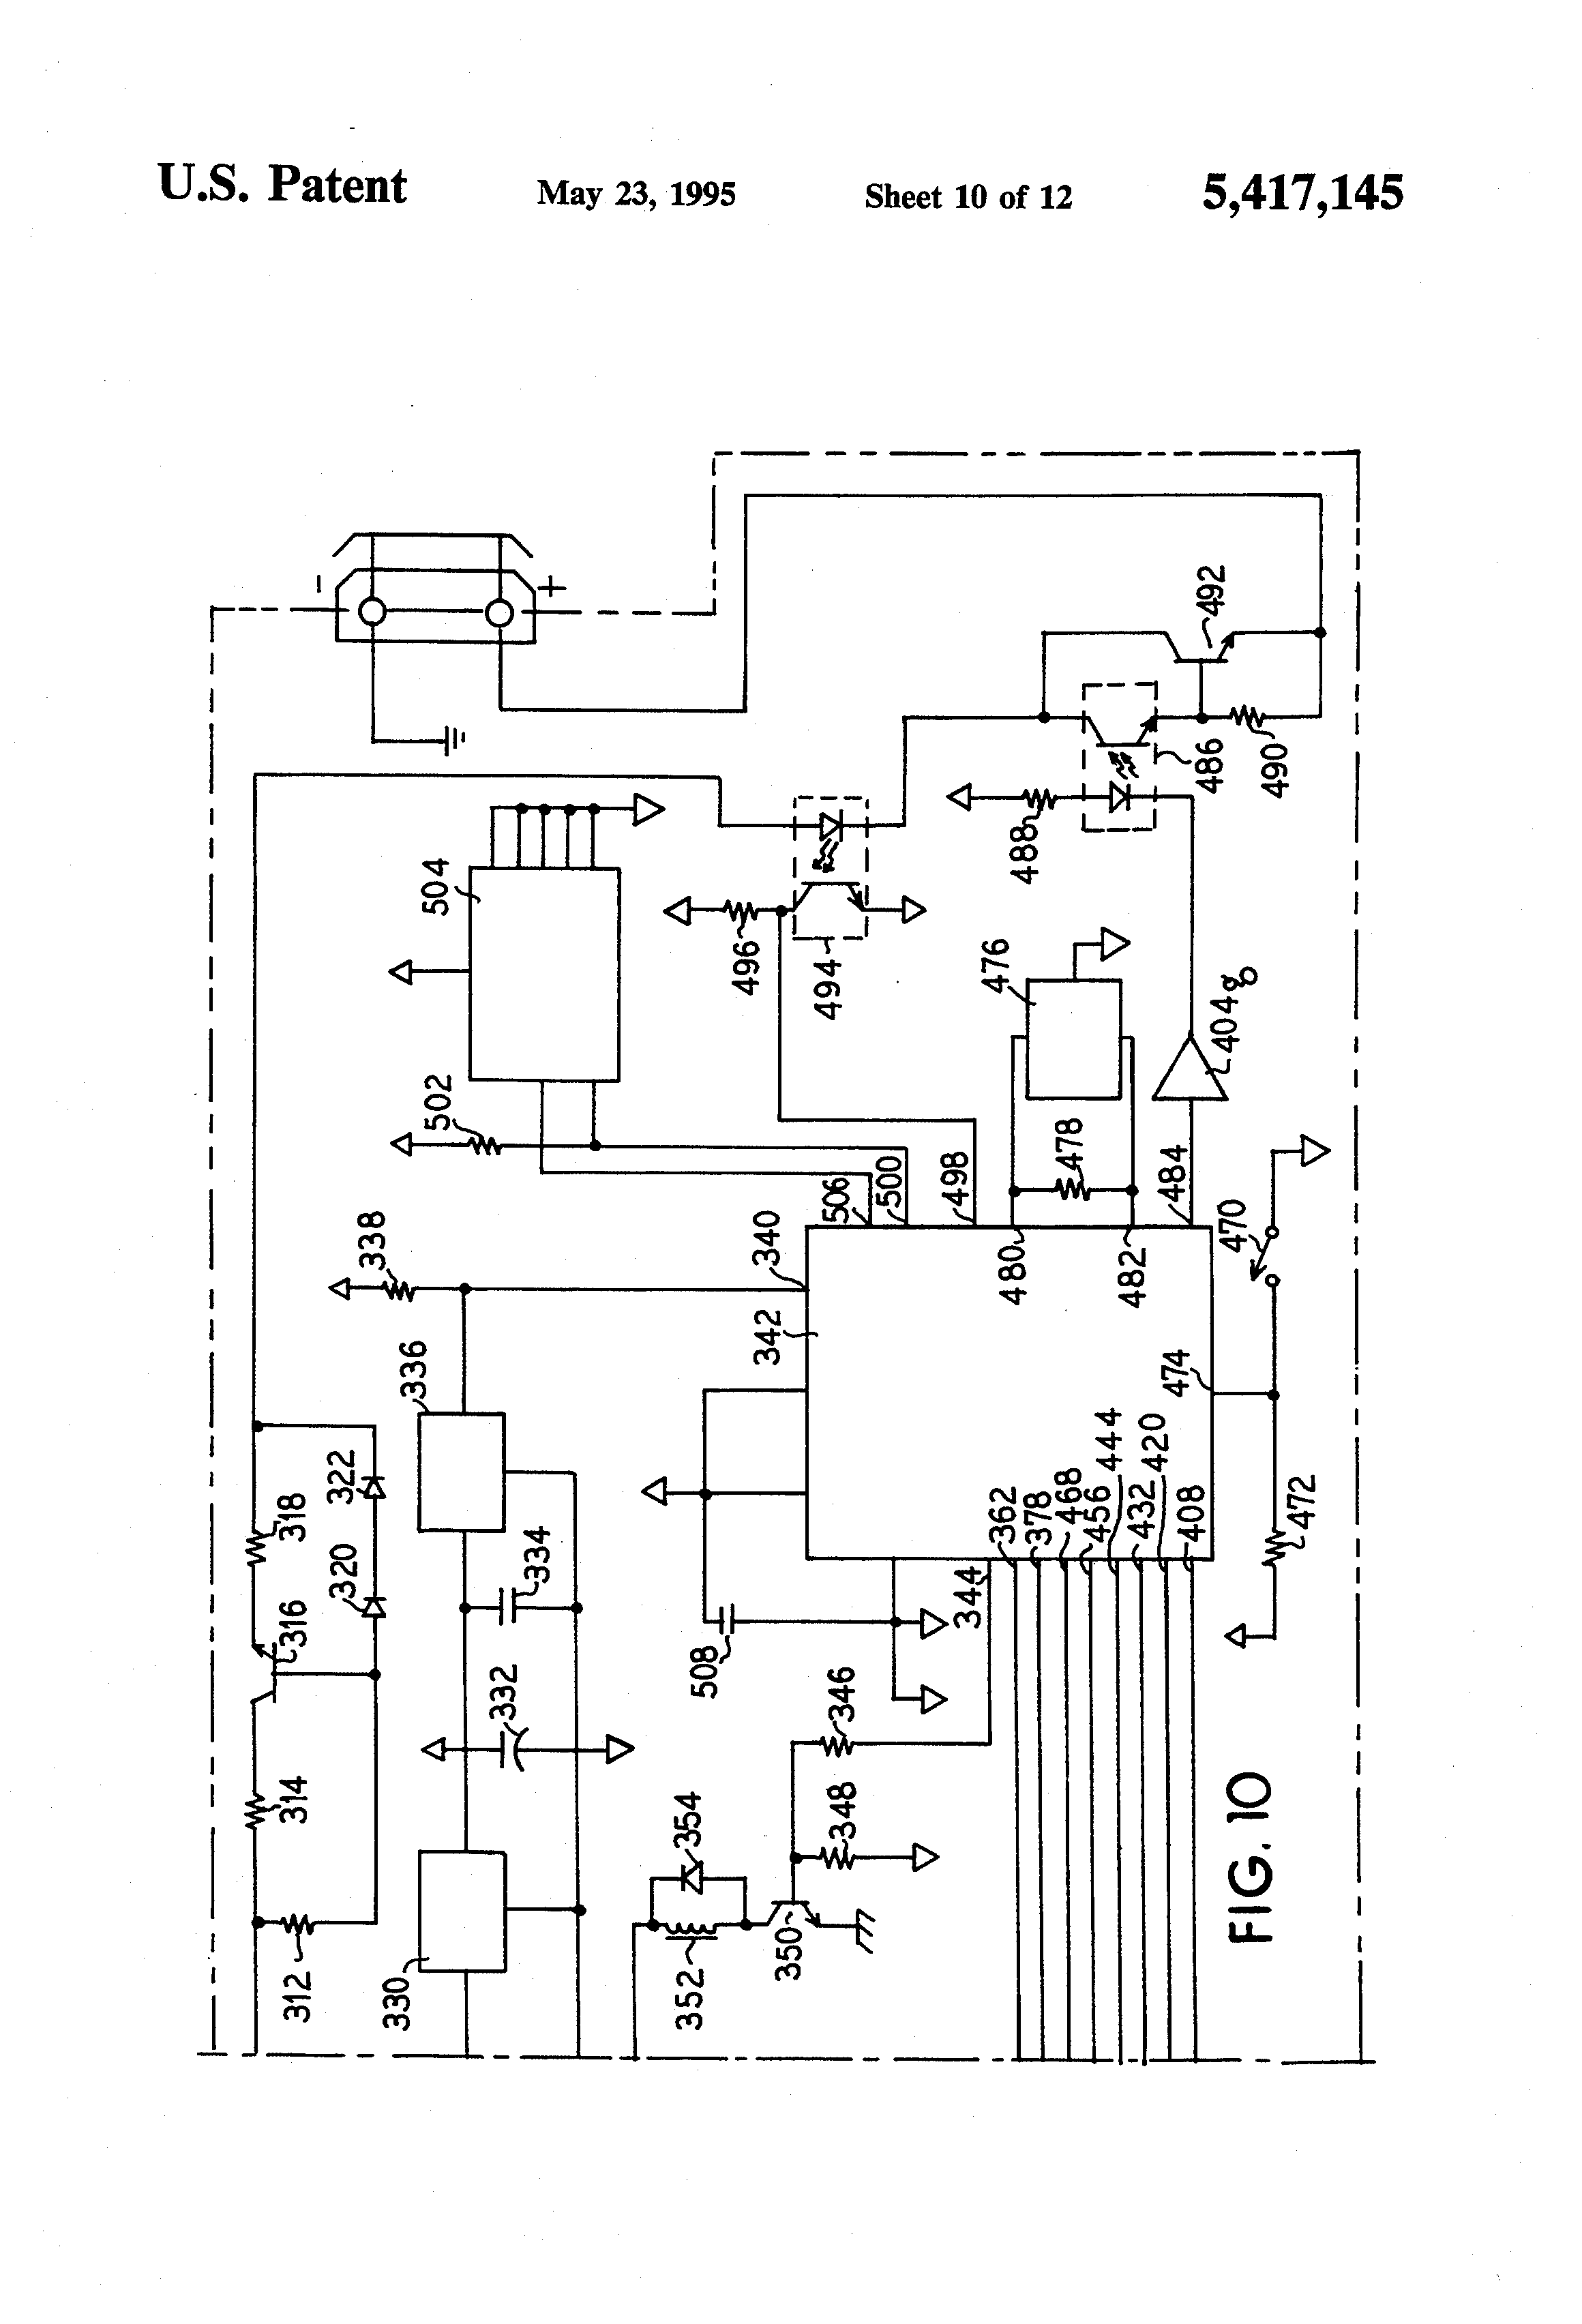 wiring diagram edwards 592 transformer wiring patent us5417145 control apparatus and method for coffee grinder on wiring diagram edwards 592 transformer